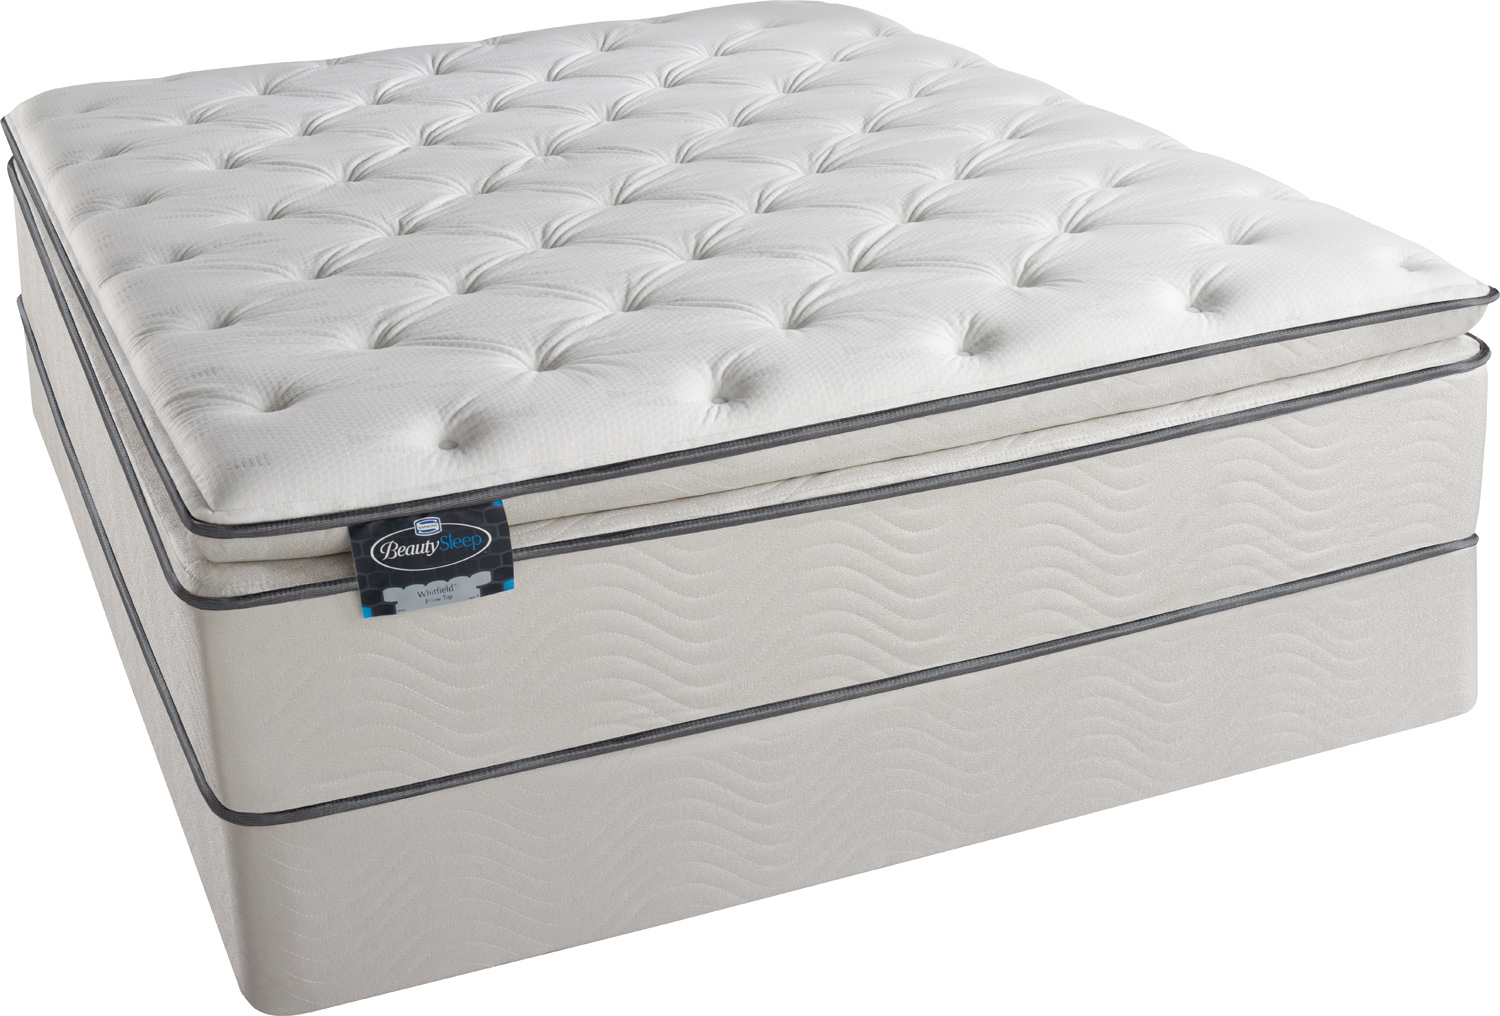 x - Simmons BeautySleep - Euro Pillow Top Foam Encased